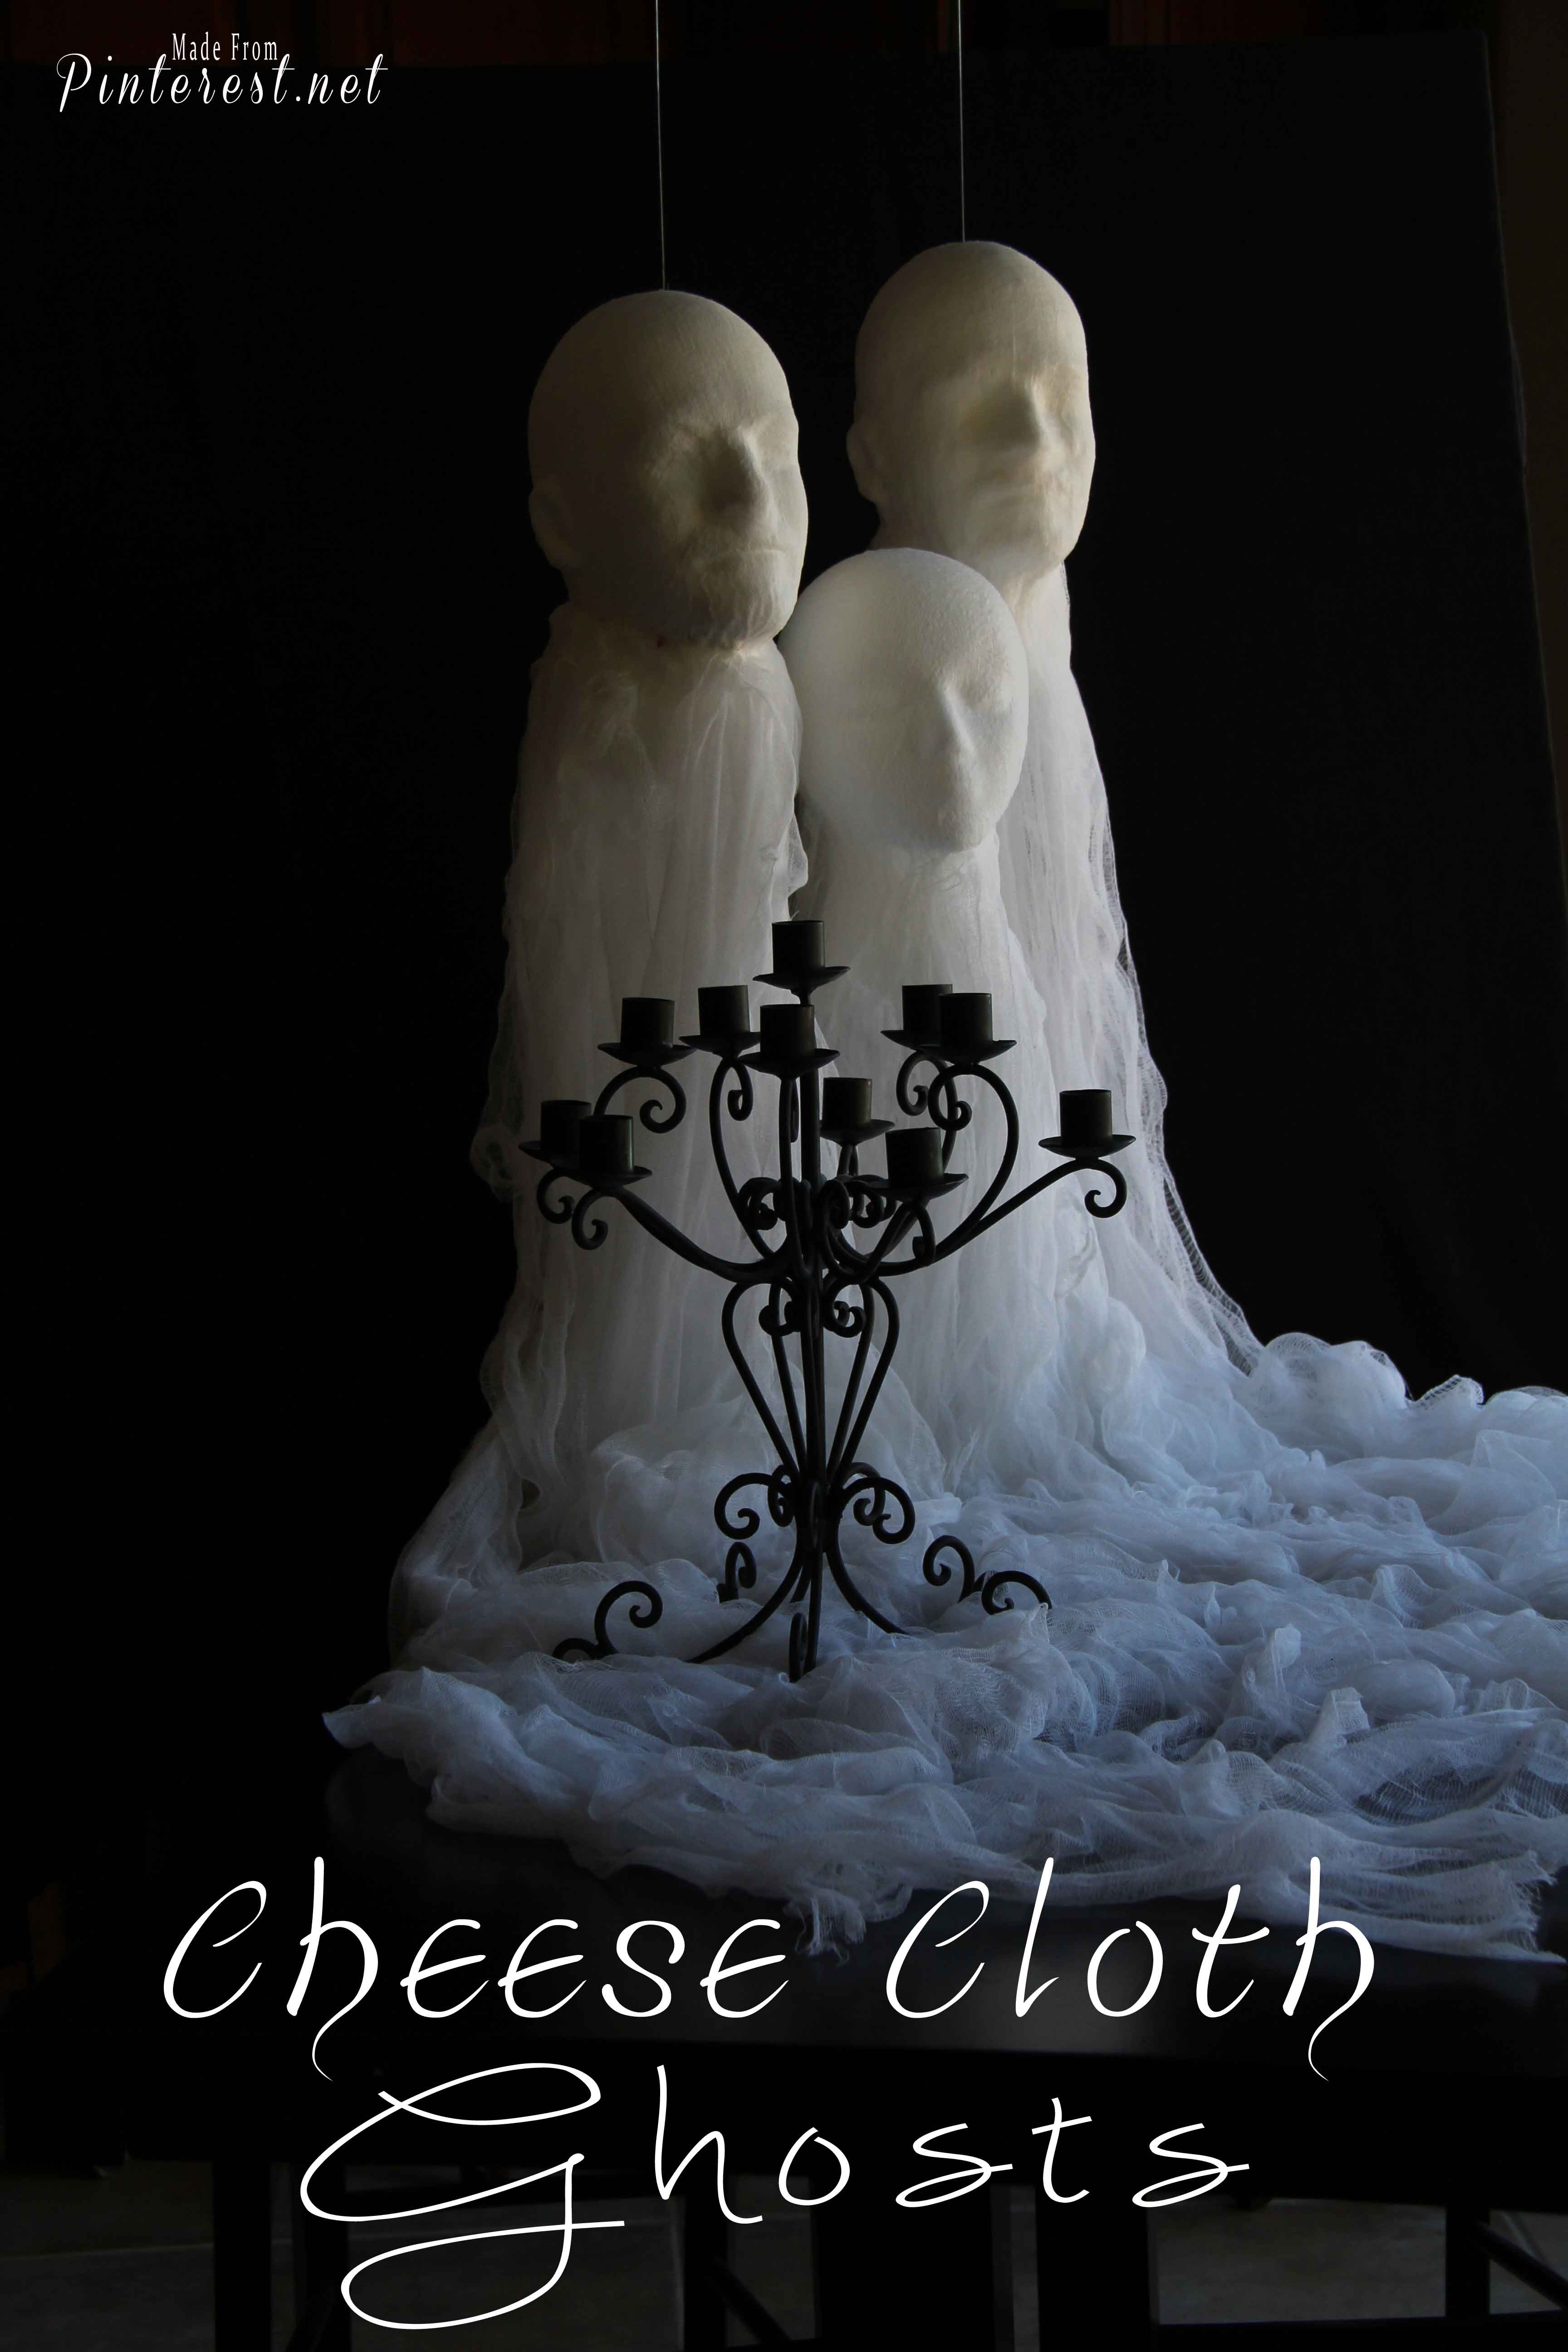 Cheese Cloth Ghosts - Make these creepy looking ghosts with cheese cloth, glue and wig heads. Awesome decorations for Halloween! #Halloween #Decorations #Ghosts #Spirits